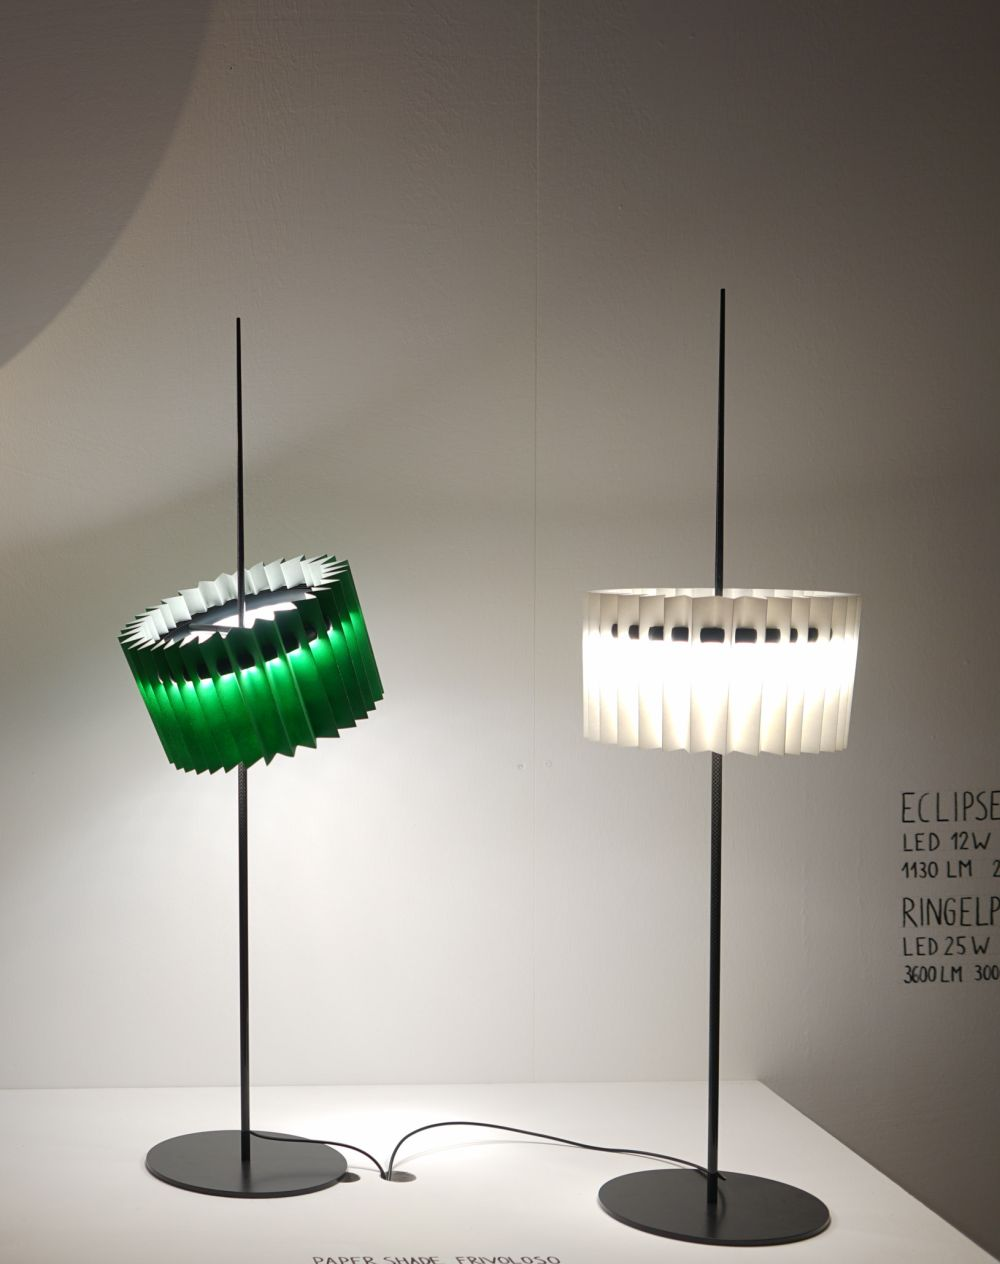 1572969274 420 bedside reading lamps with edgy and quirky designs - Bedside Reading Lamps With Edgy and Quirky Designs